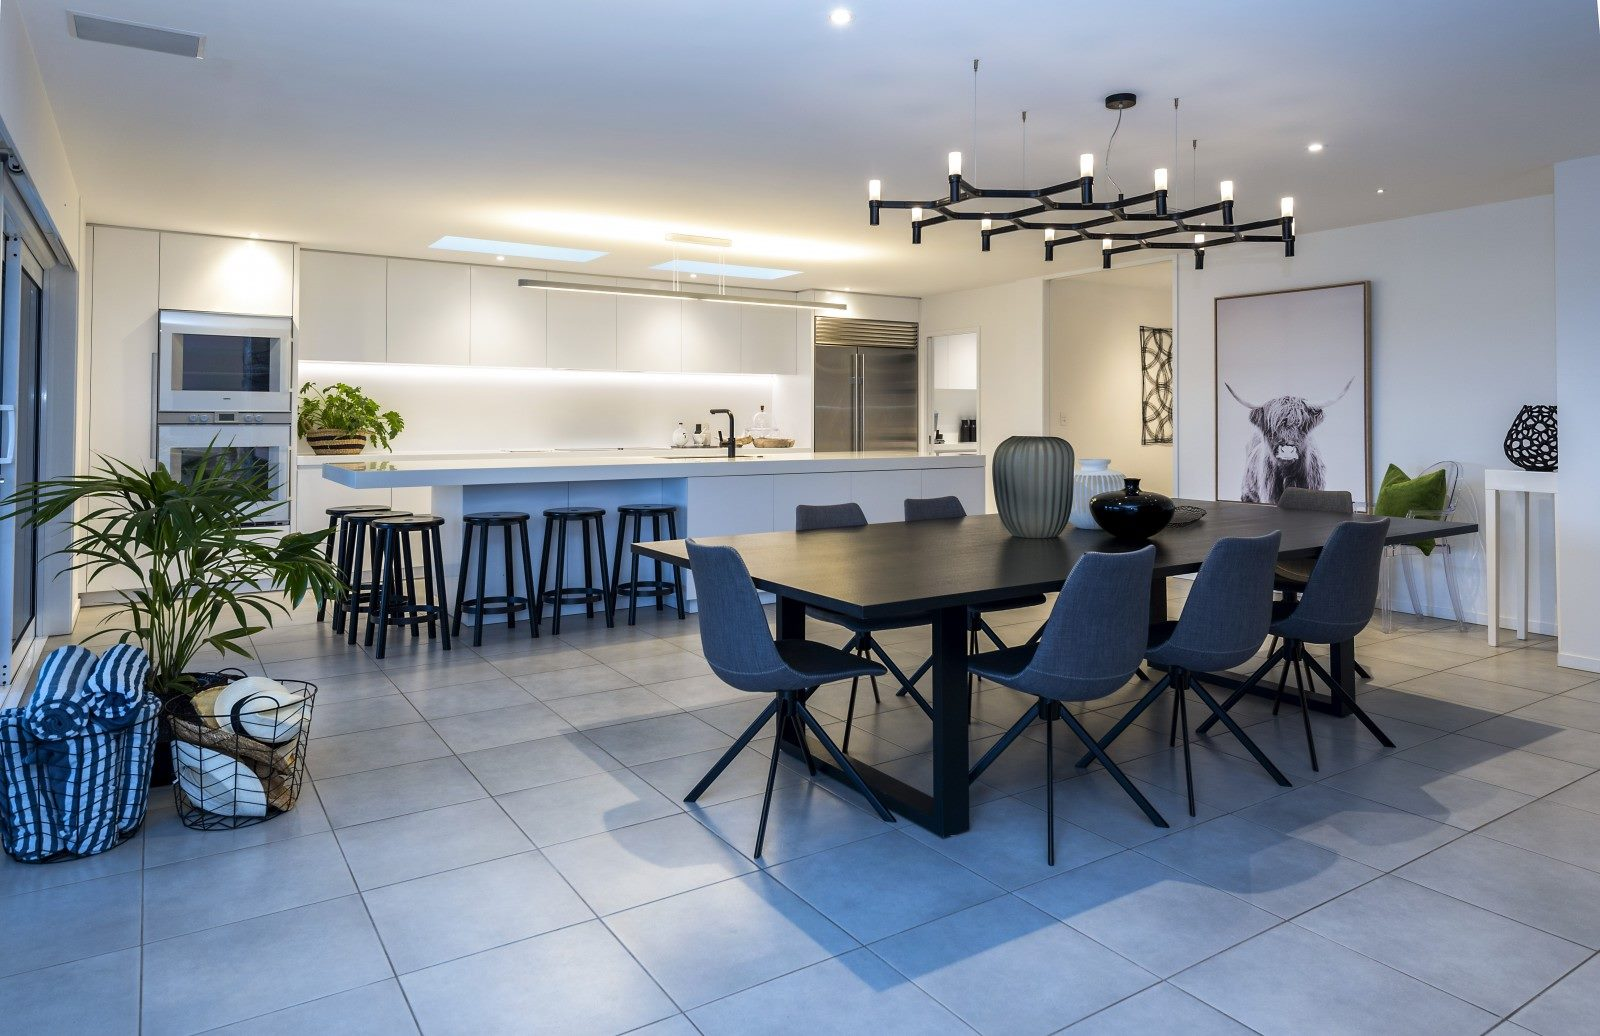 contemporary tiled kitchen dining room in high spec family home with modern art, plants and contemporary styling. kitchen with black mixer tap and double wall mounted oven